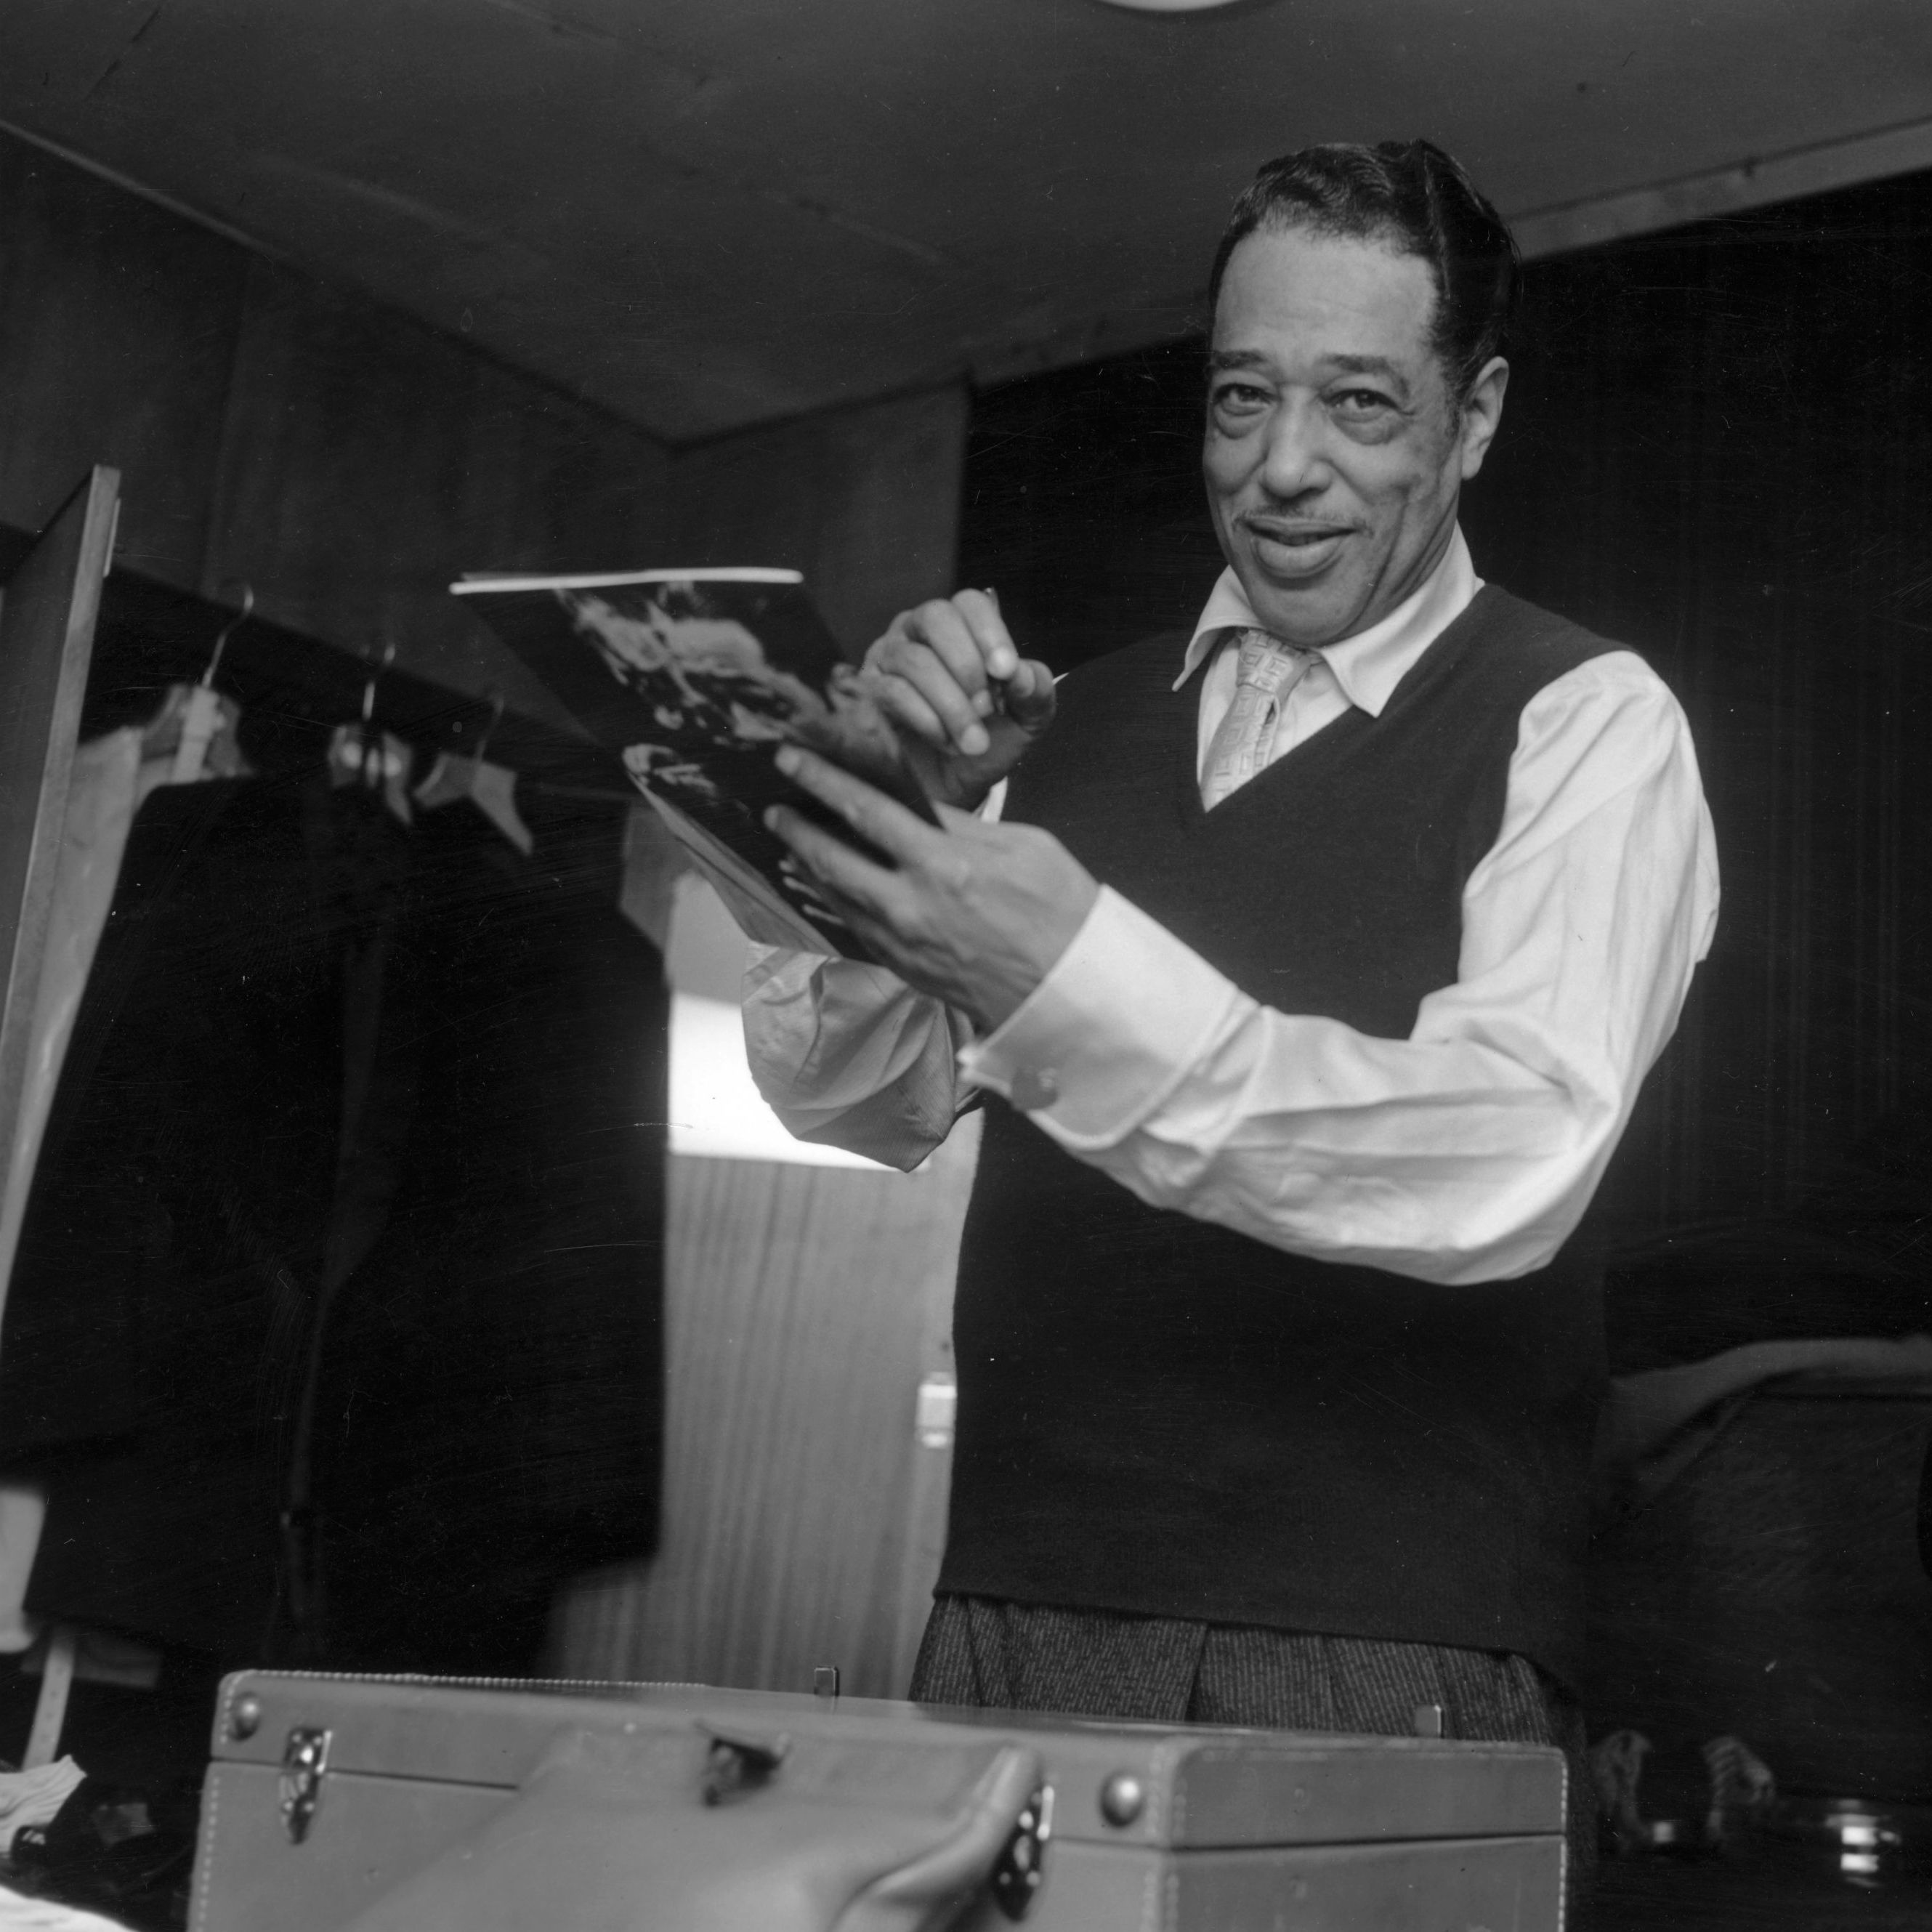 Duke Ellington signs his biography in London in 1958, with Billy Strayhorn in the background. Ellington and Strayhorn collaborated to create 1960's The Nutcracker Suite.